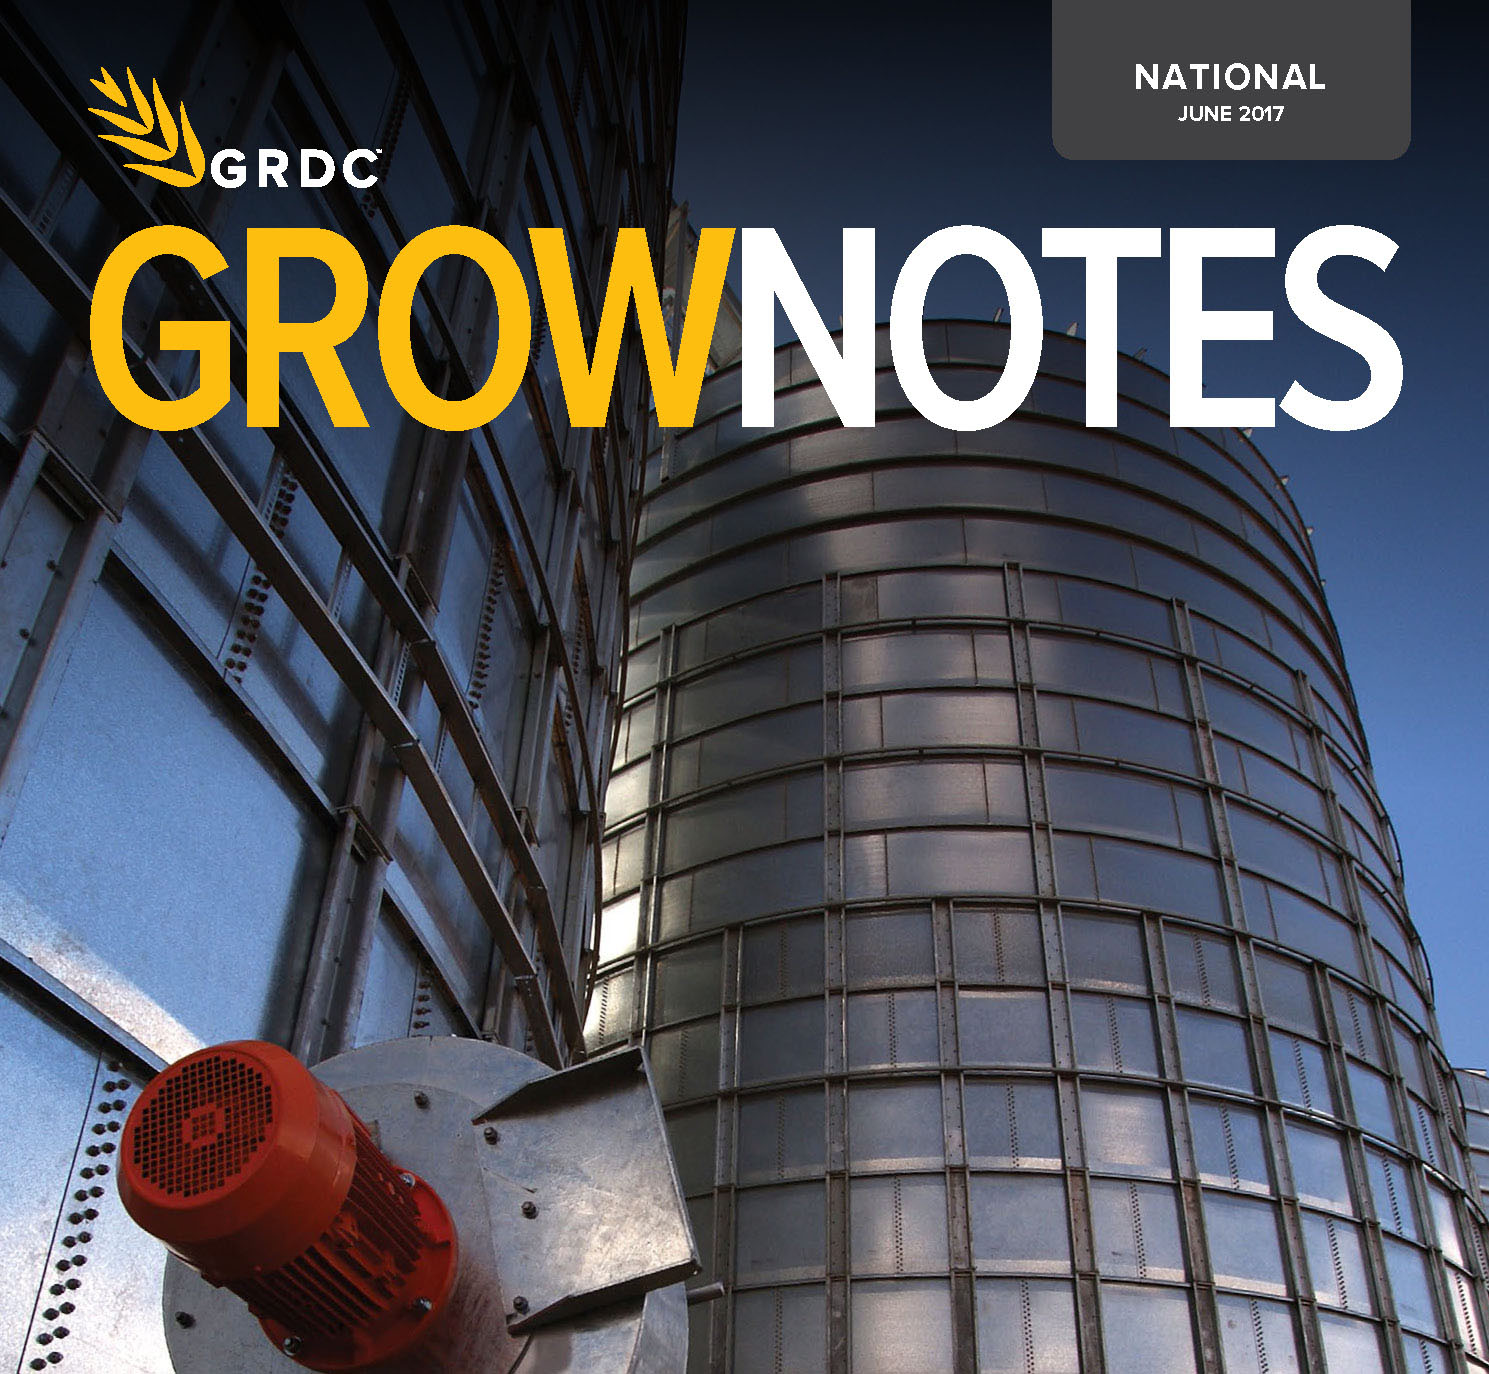 Grain storage grow notes